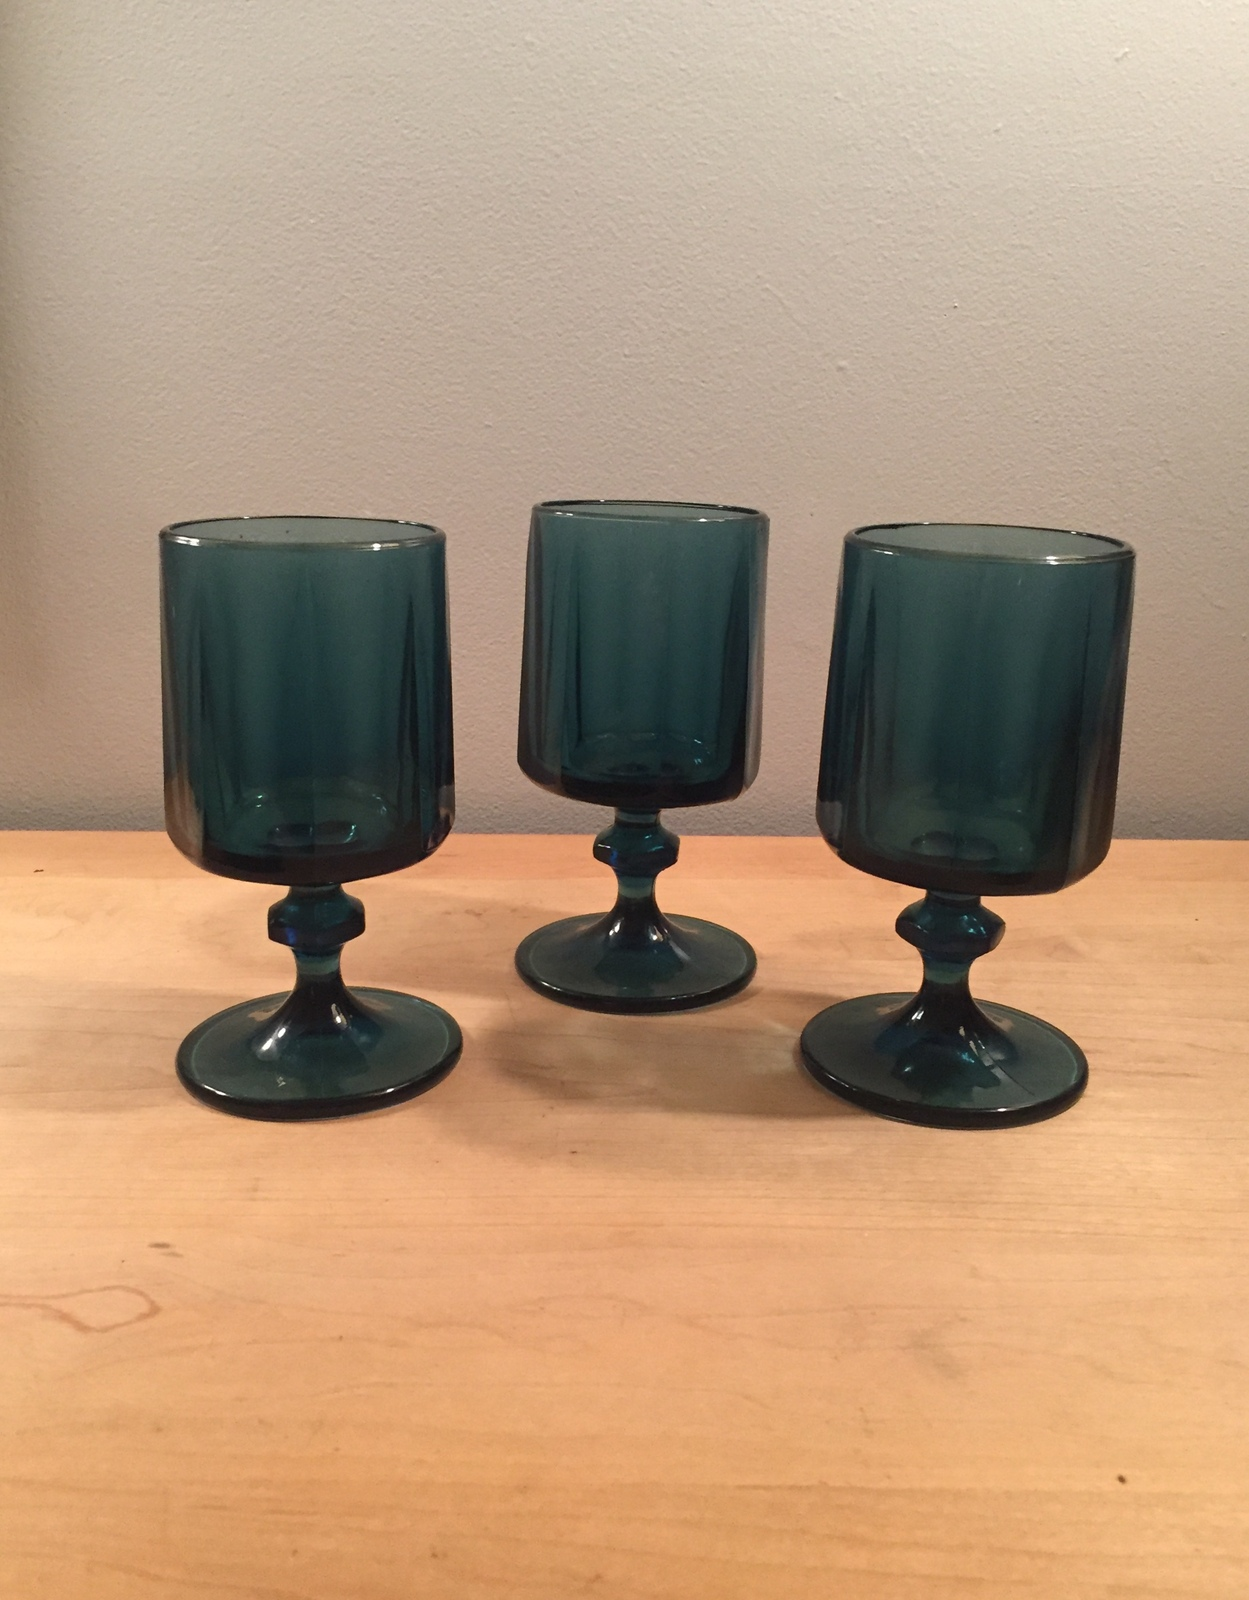 Denim blue goblets set of 3 made by Colony/Indiana Glass in the Nouveau pattern